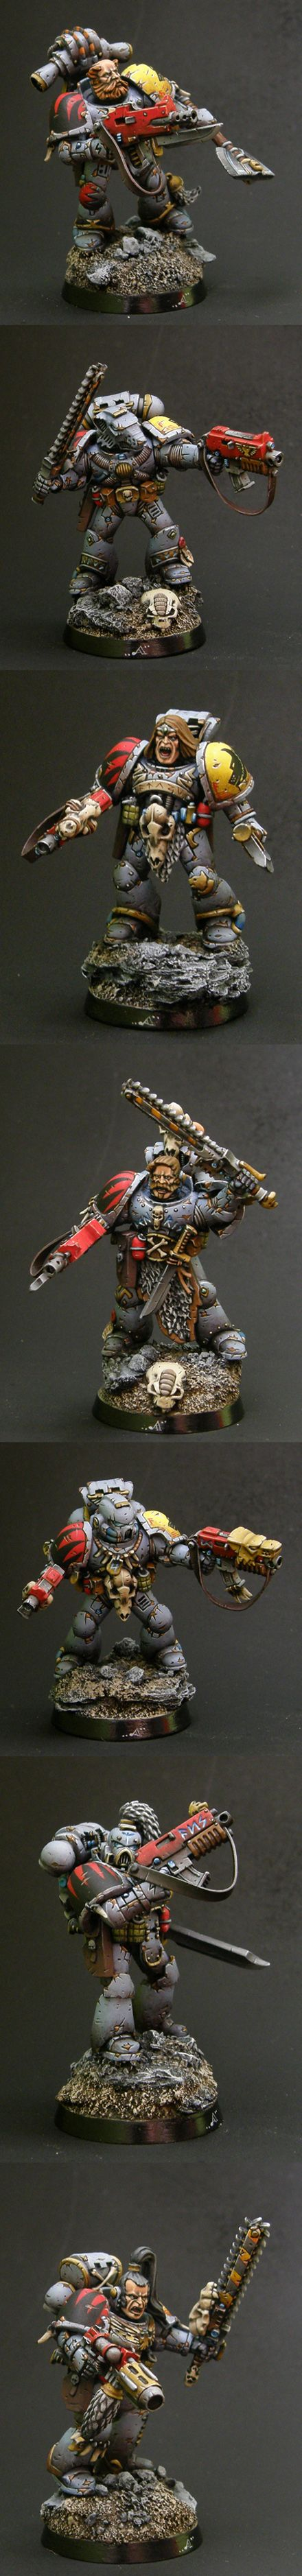 W40K - Space Wolves (by Artur)